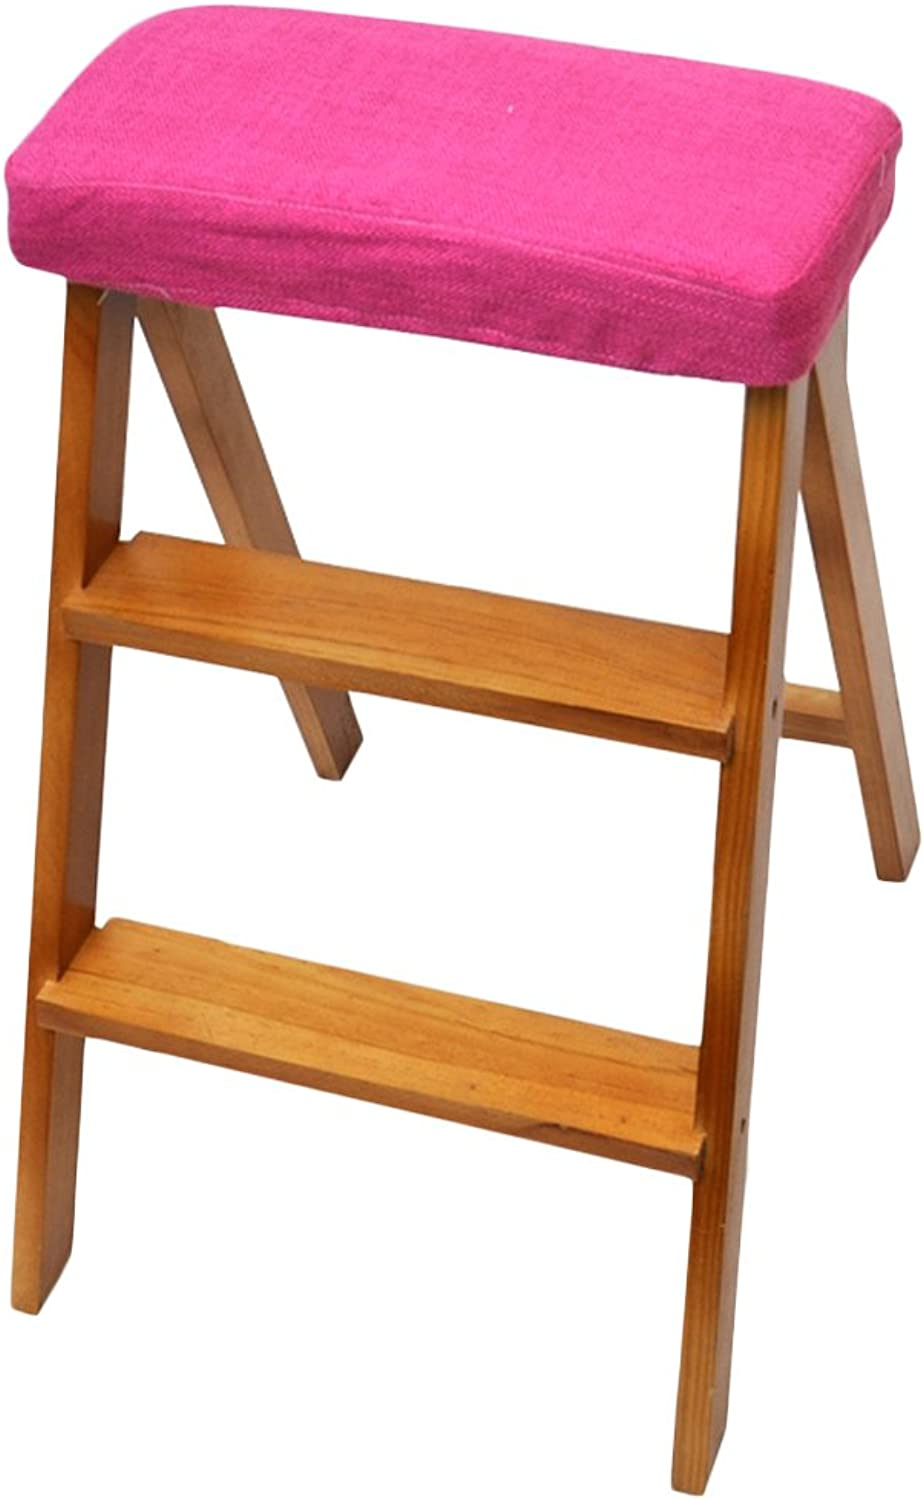 2 Steps Step Stool Solid Wood Collapsible Creativity Multifunction Portable Stool Apply to Kitchen Household Furniture (color   T, Size   424963cm)